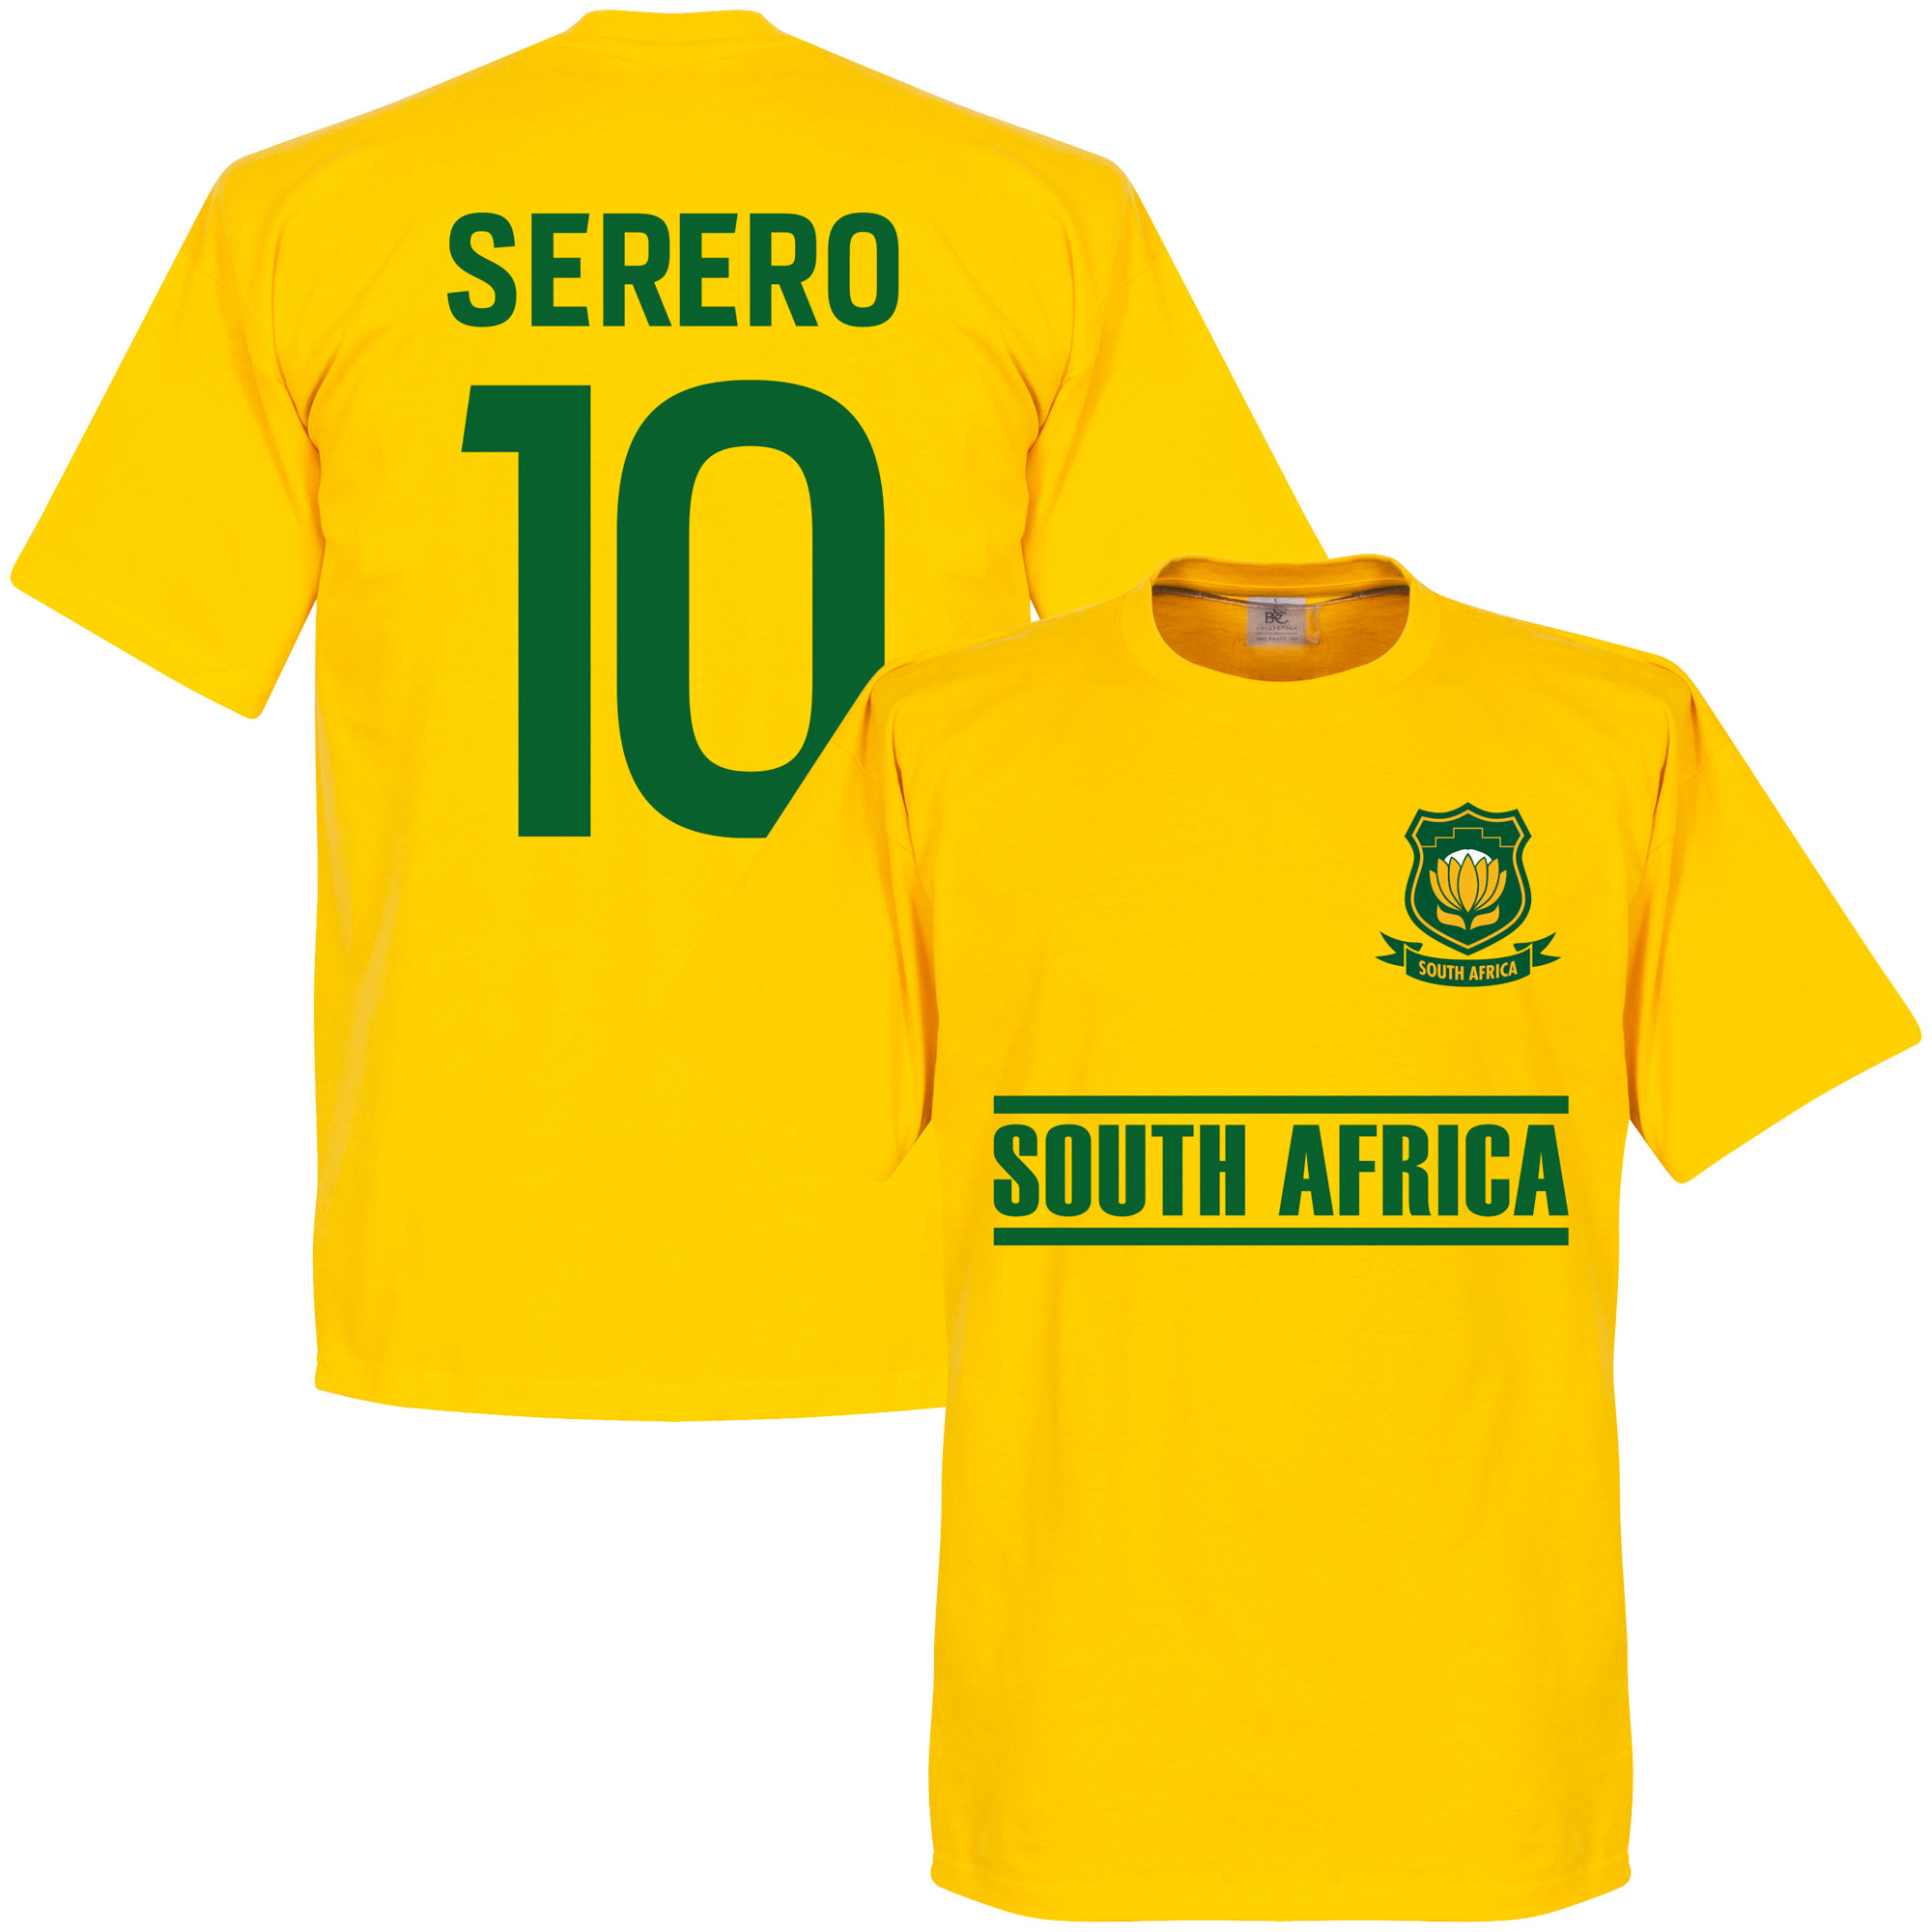 South Africa Serero Tem Tee - Yellow - M